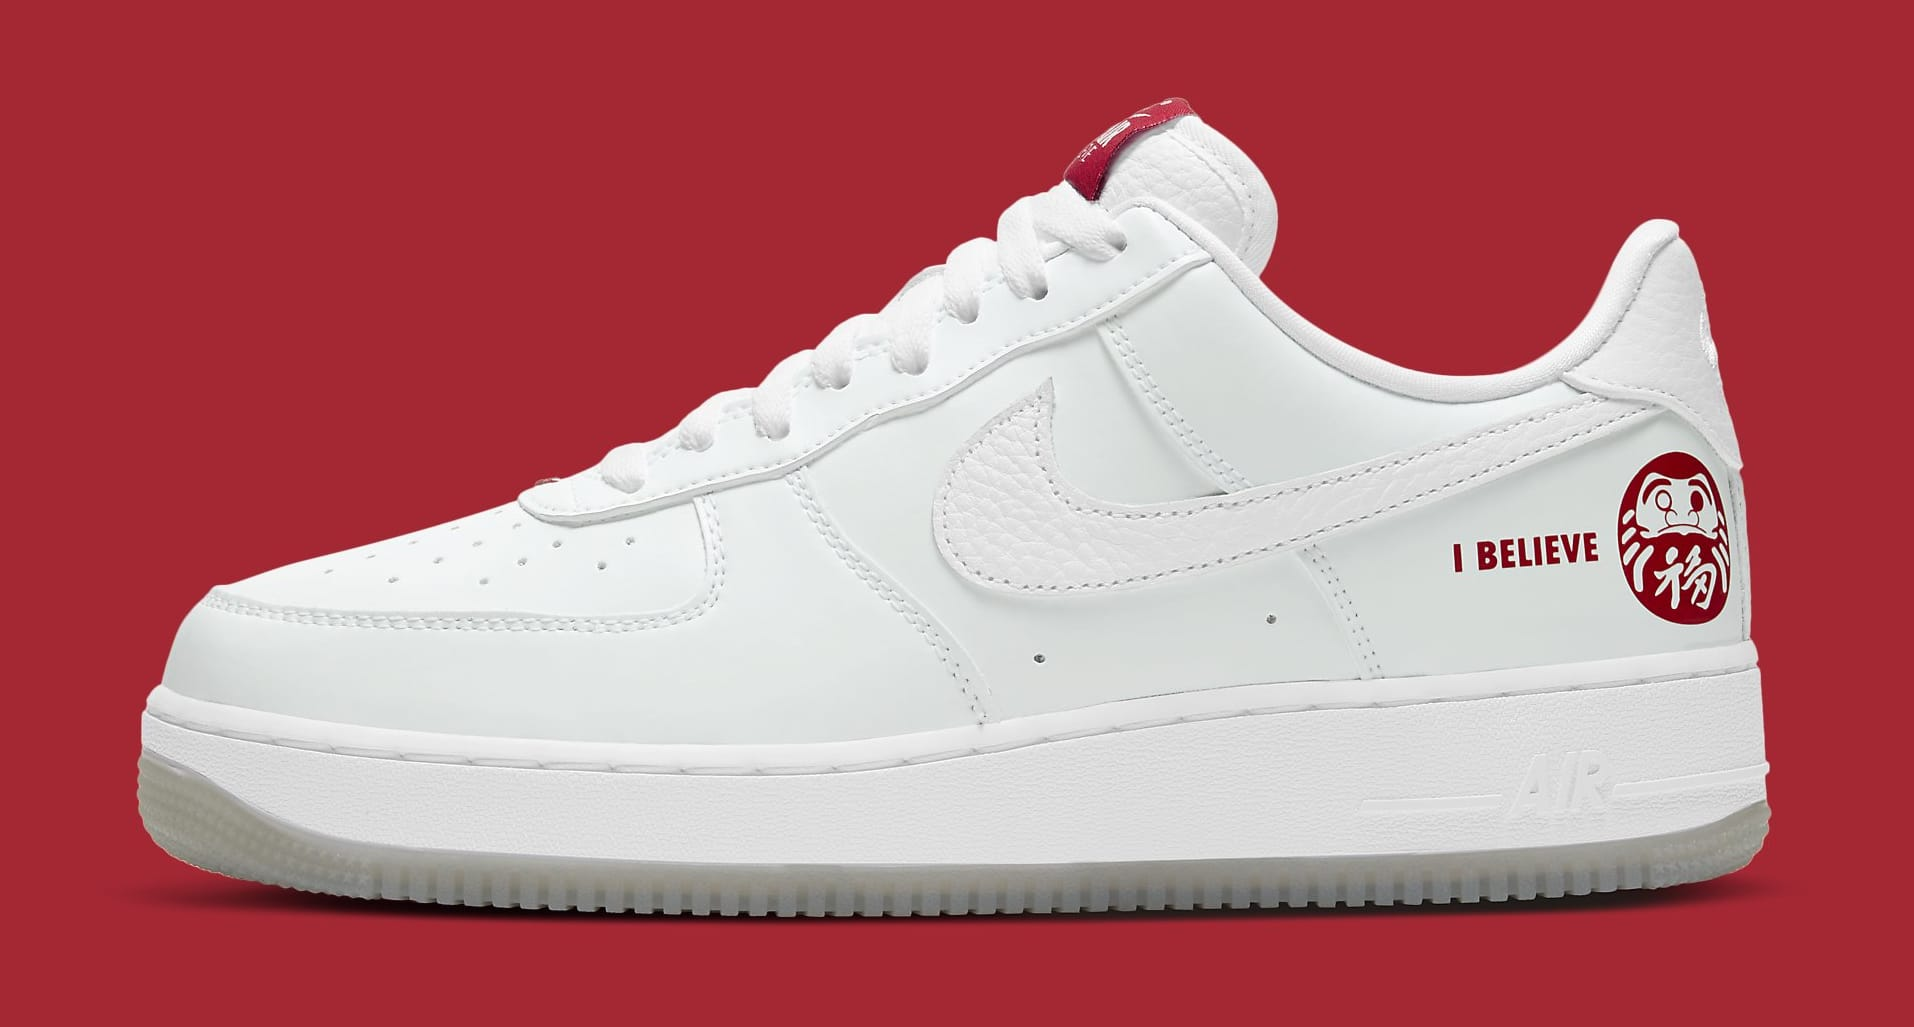 BAIT x Nike Air Force 1 Low 'I Believe' DD9941-100 Lateral